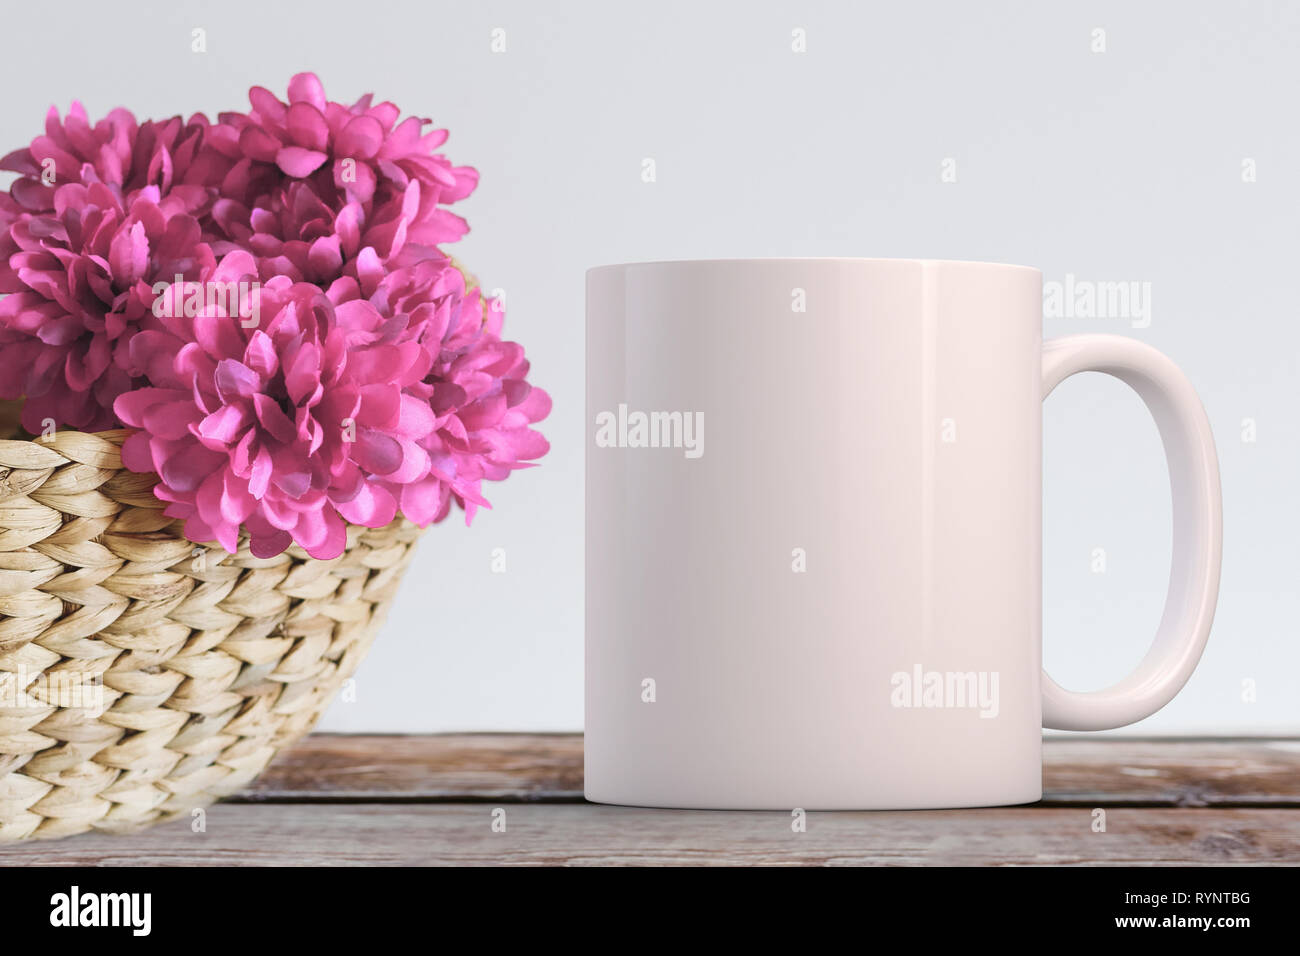 The Mug Coffee >> Blank White Mug Coffee Mug Next To Silk Flowers In A Basket Perfect